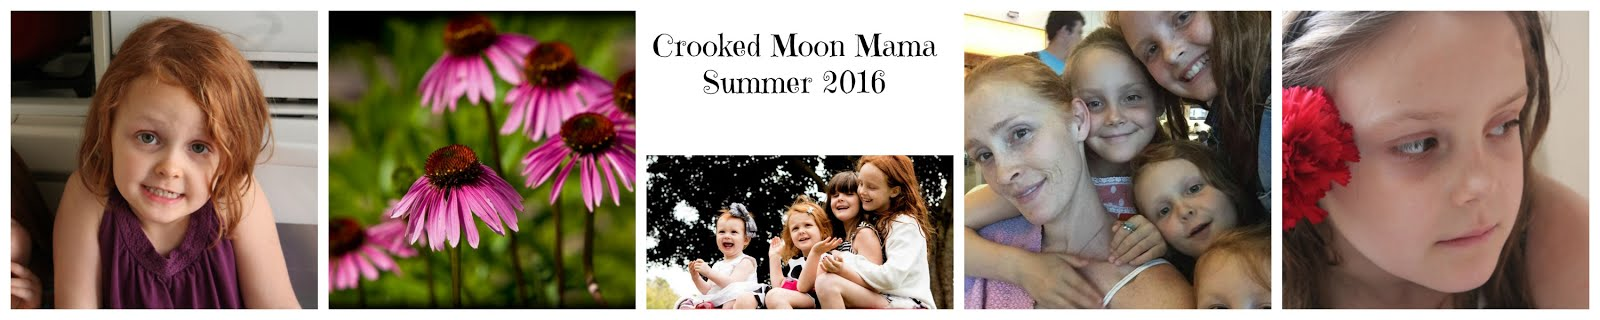 Crooked Moon Mama